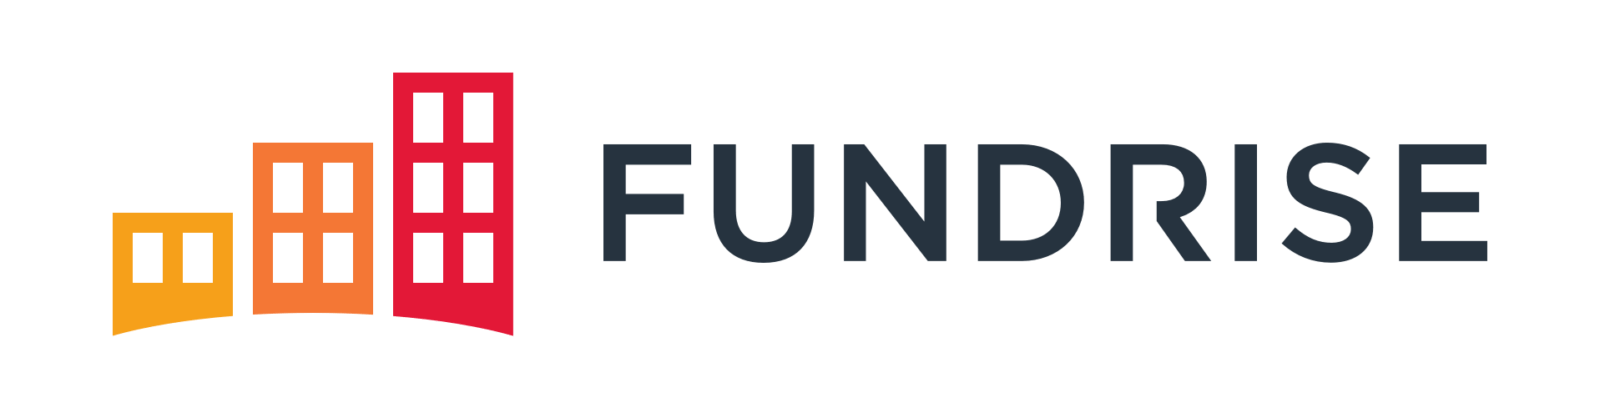 Is fundrise ipo a good investment